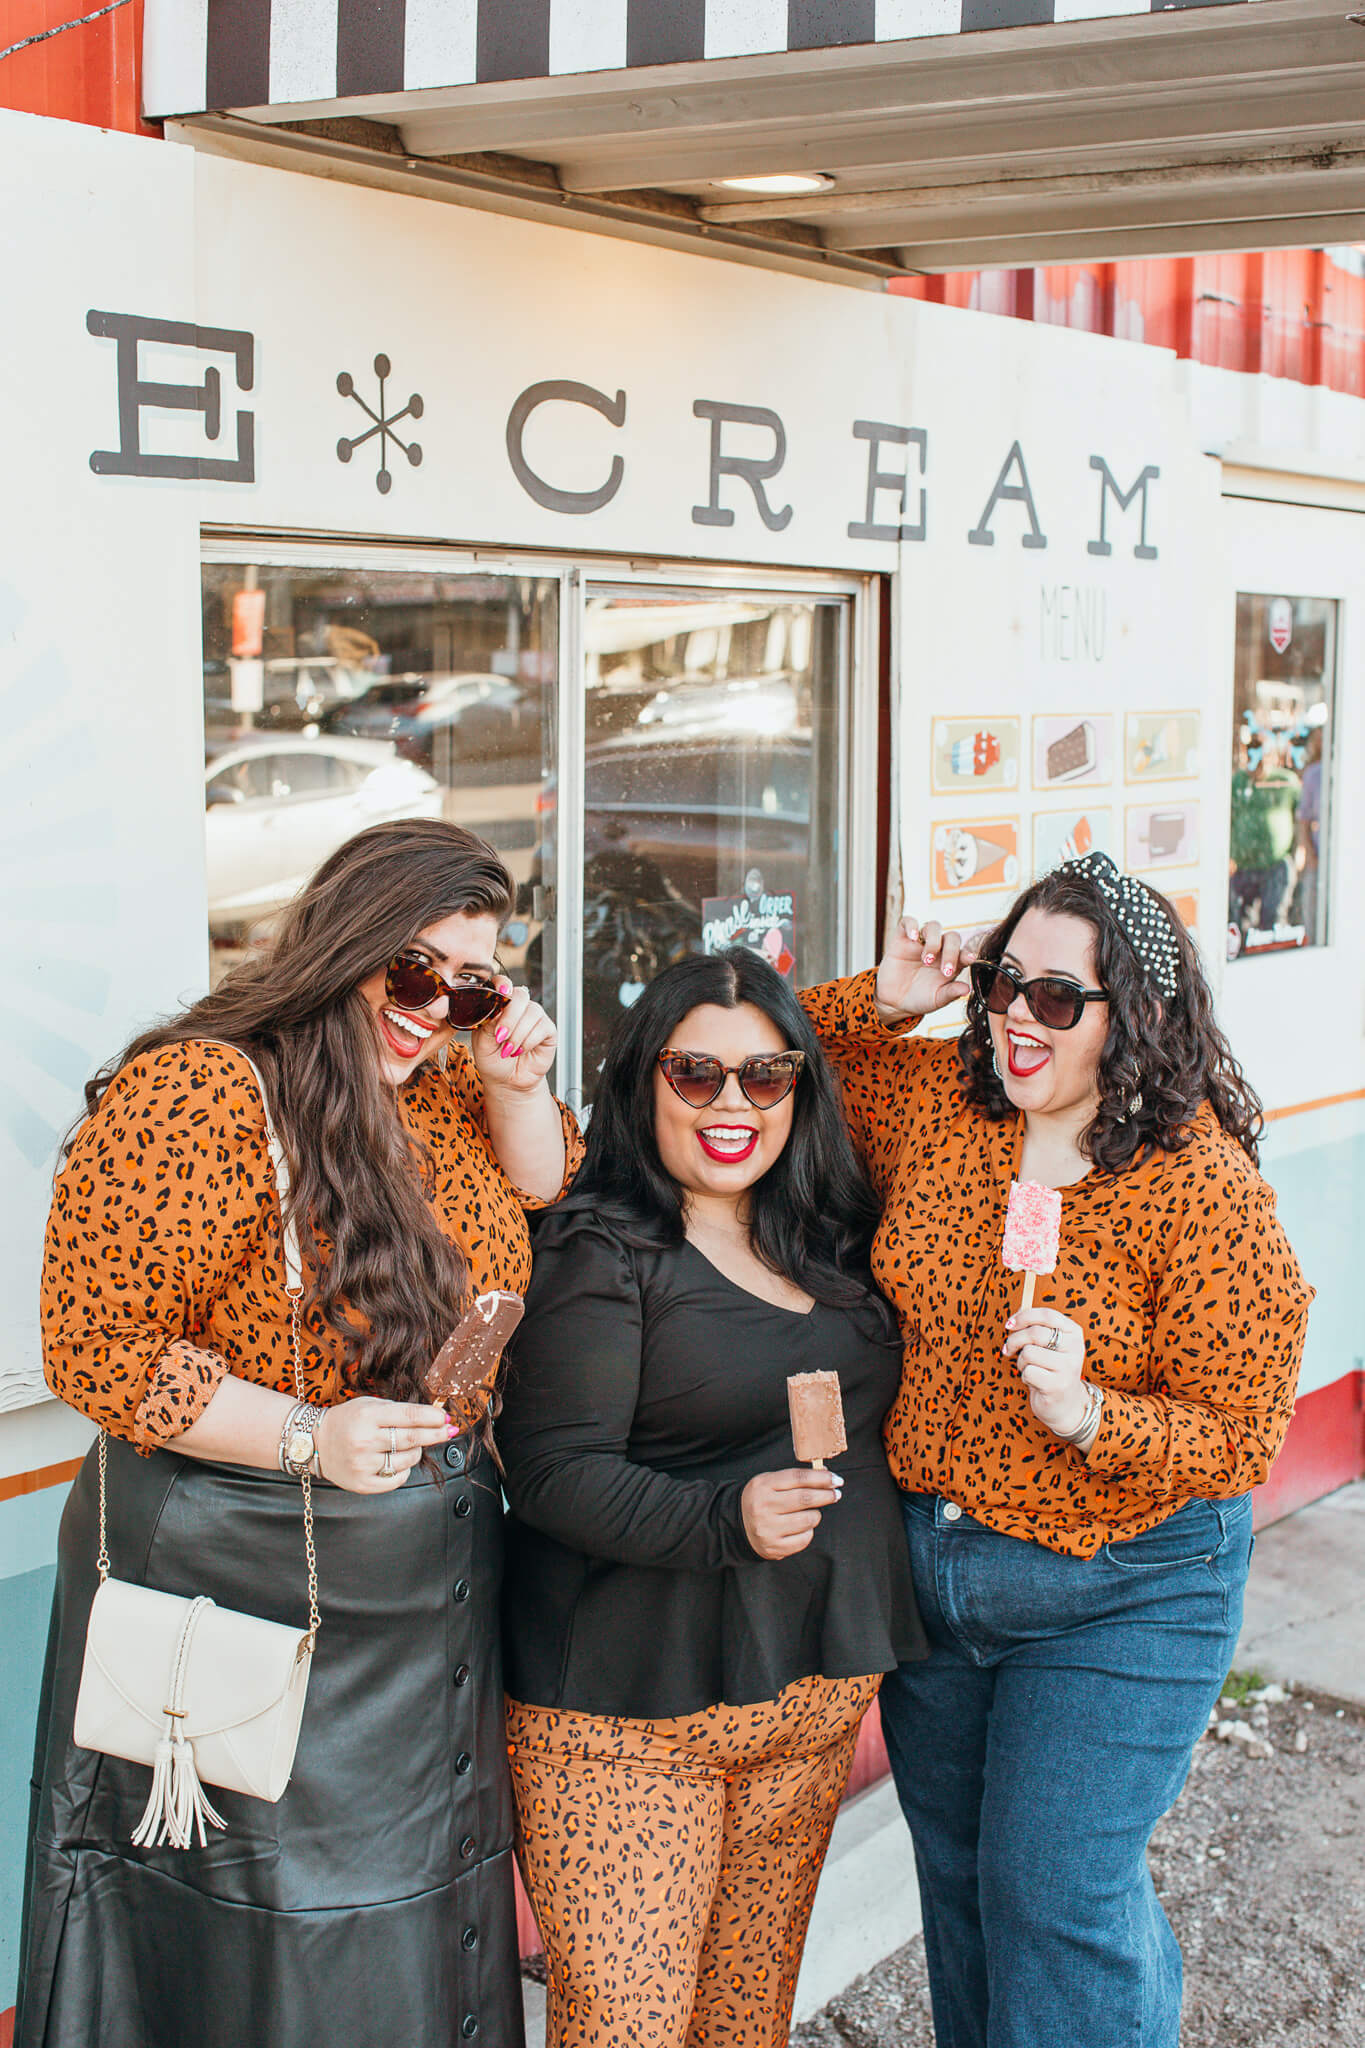 Plus size cheetah outfits